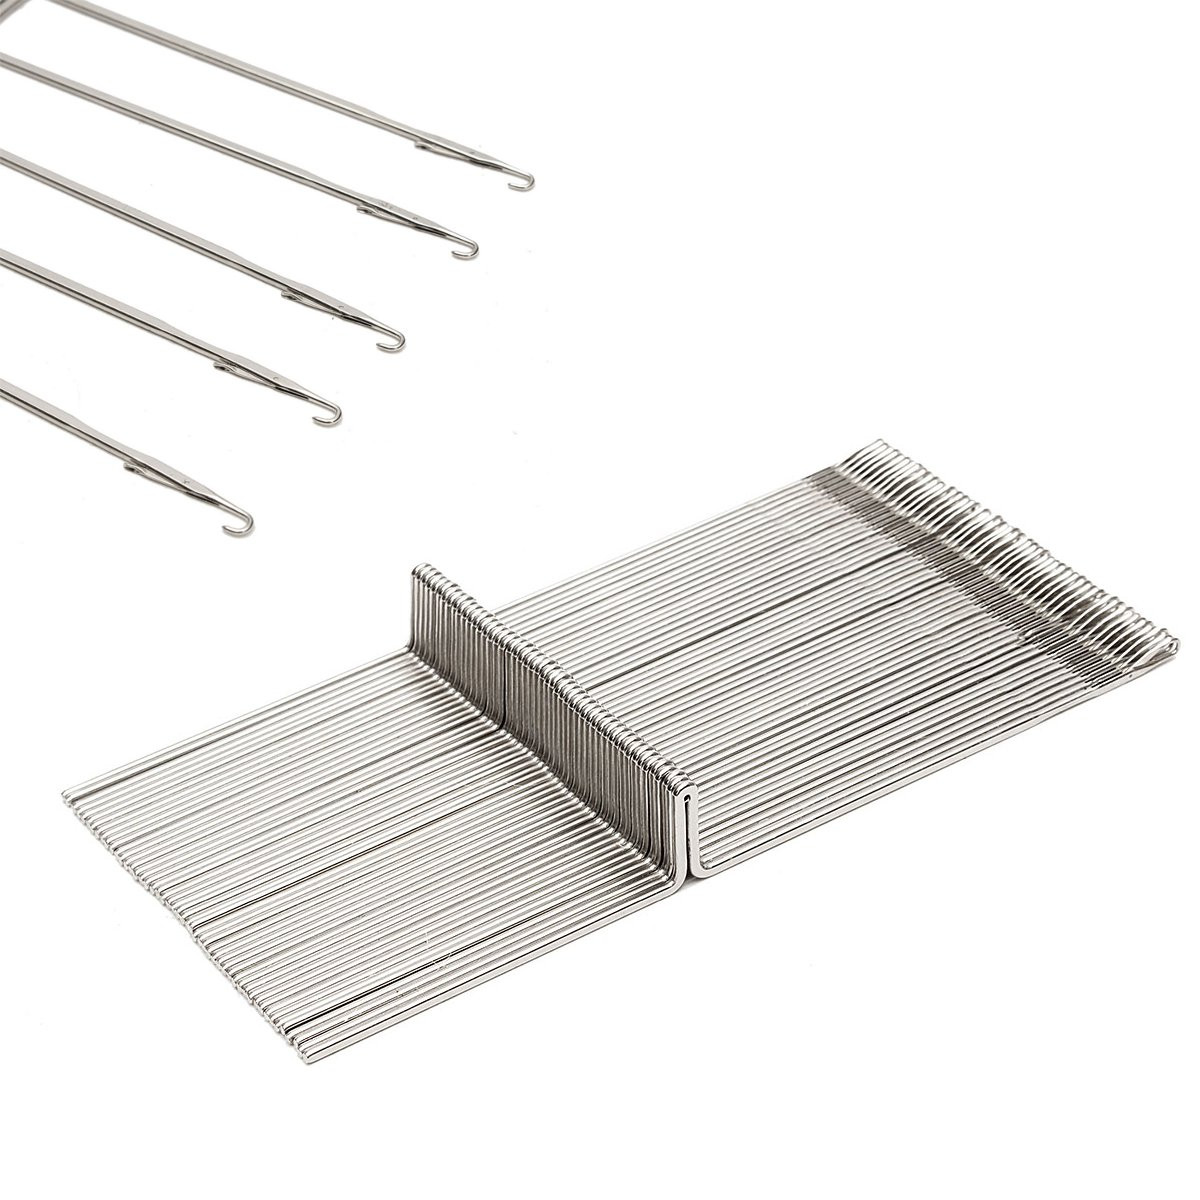 50Pcs Knitting Needles for Brother Knitting Machine KH820 KH830 KH860 KH881 KH868 KH940 KH970